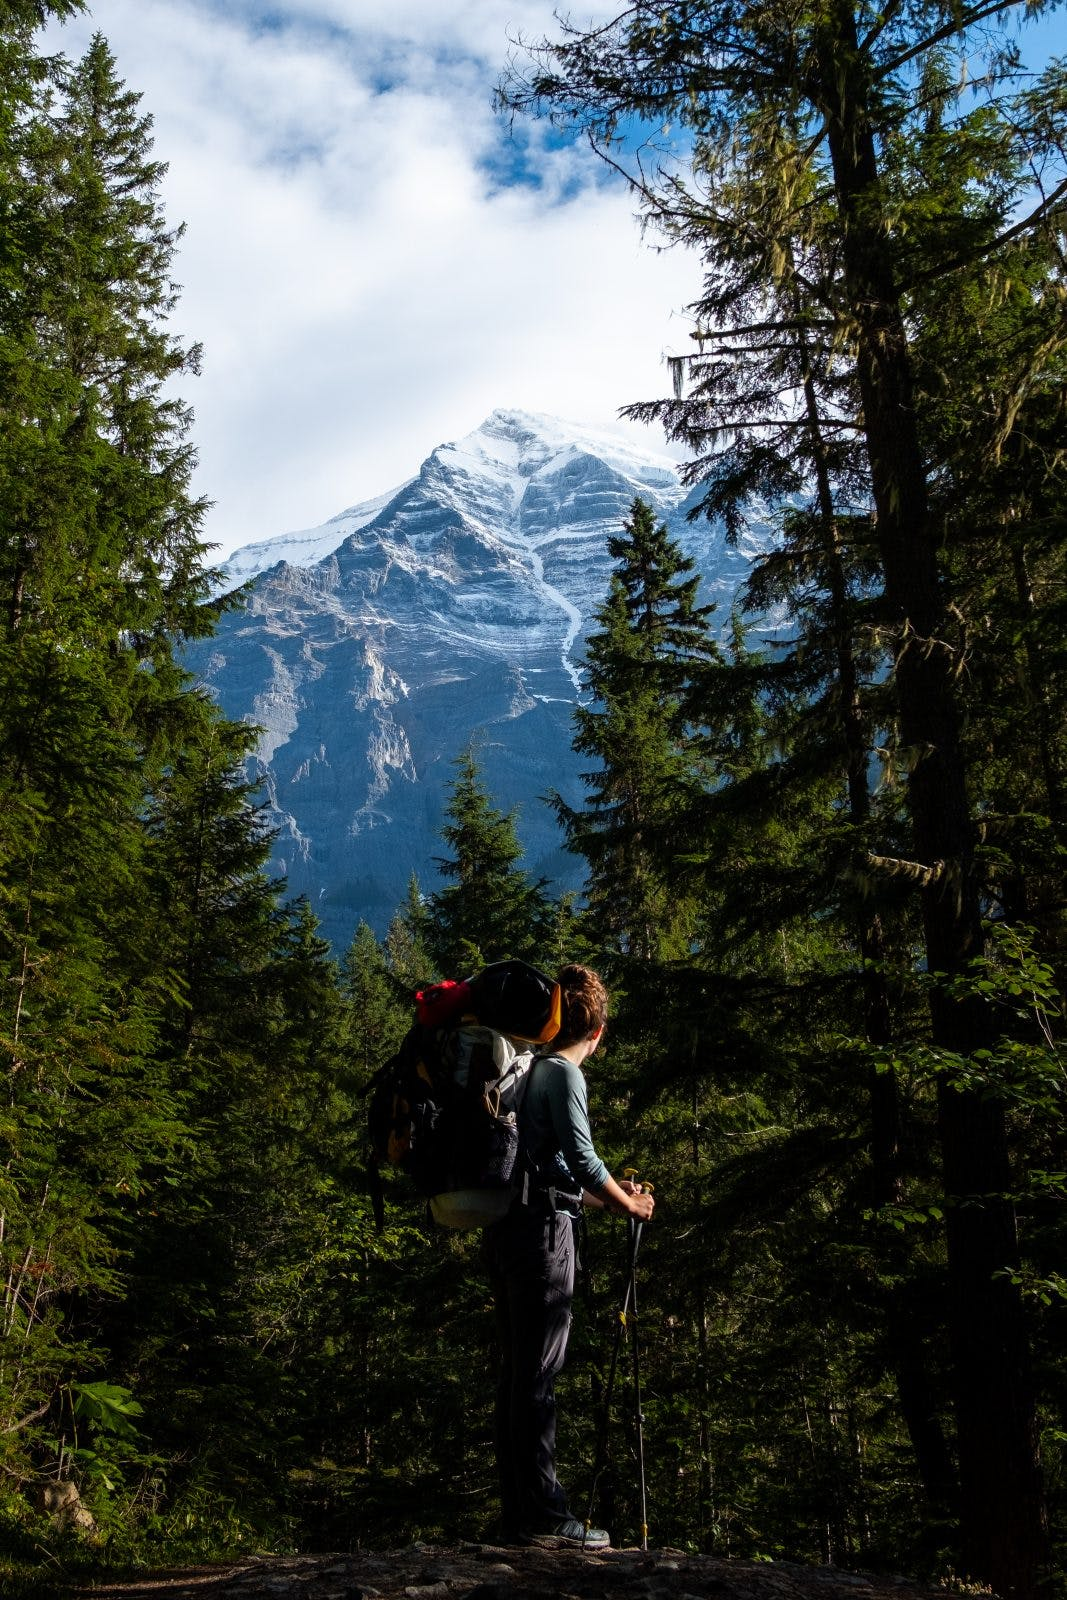 In the shadow of Mt. Robson - the highest peak in the Canadian Rockies at 3953m. Photo by Coburn Brown